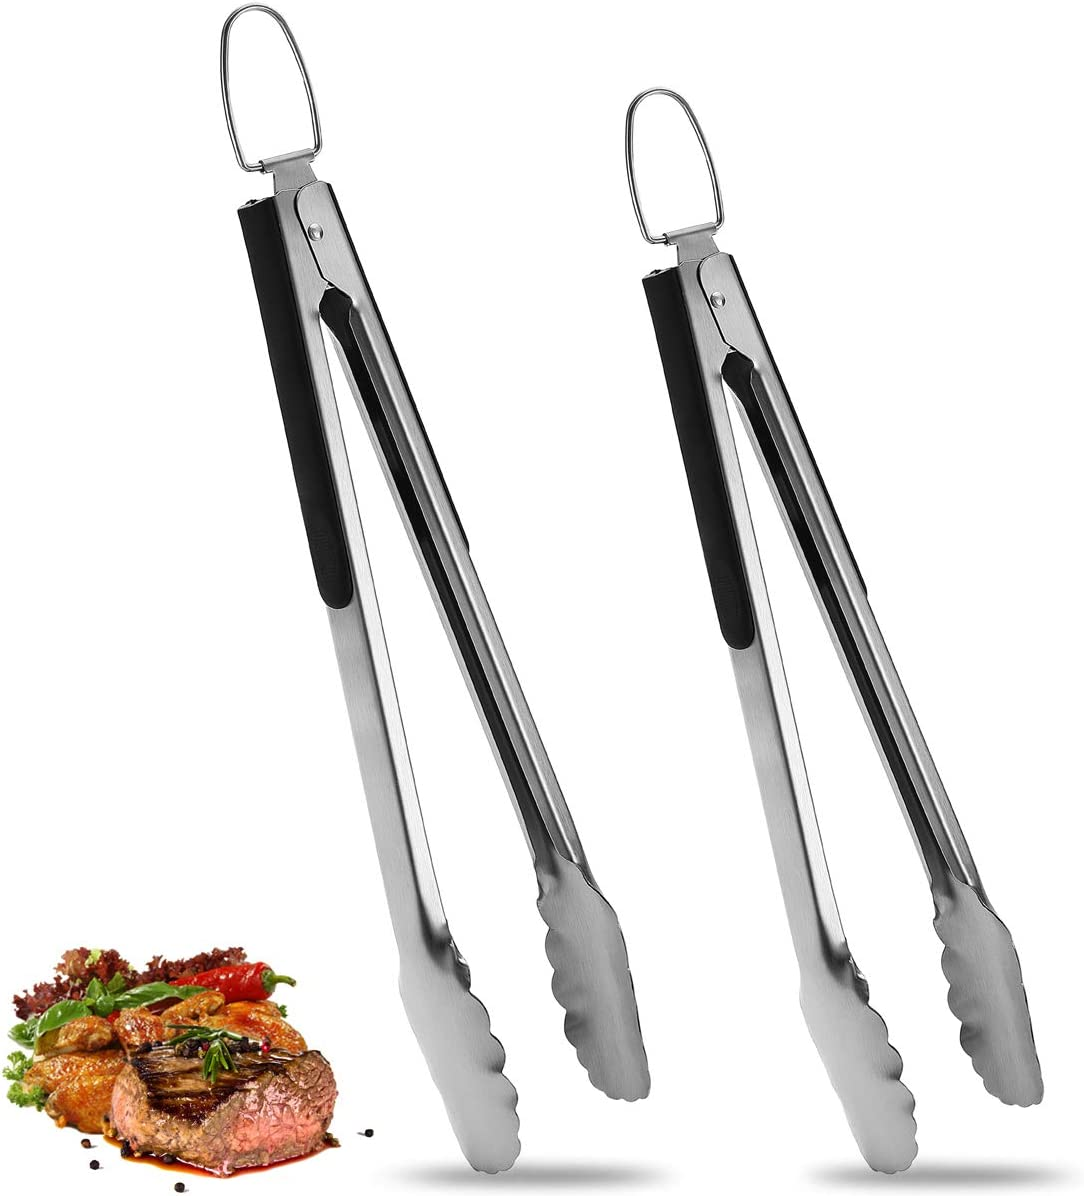 ROMANTICIST 2 Pack Stainless Steel Food Cooking Tongs (9 Inch & 12 Inch), Locking Kitchen Tongs with Non-Slip Grip, Set of 2 Heavy Duty Locking Metal Tongs, Perfect for Cooking, Grilling and Serving